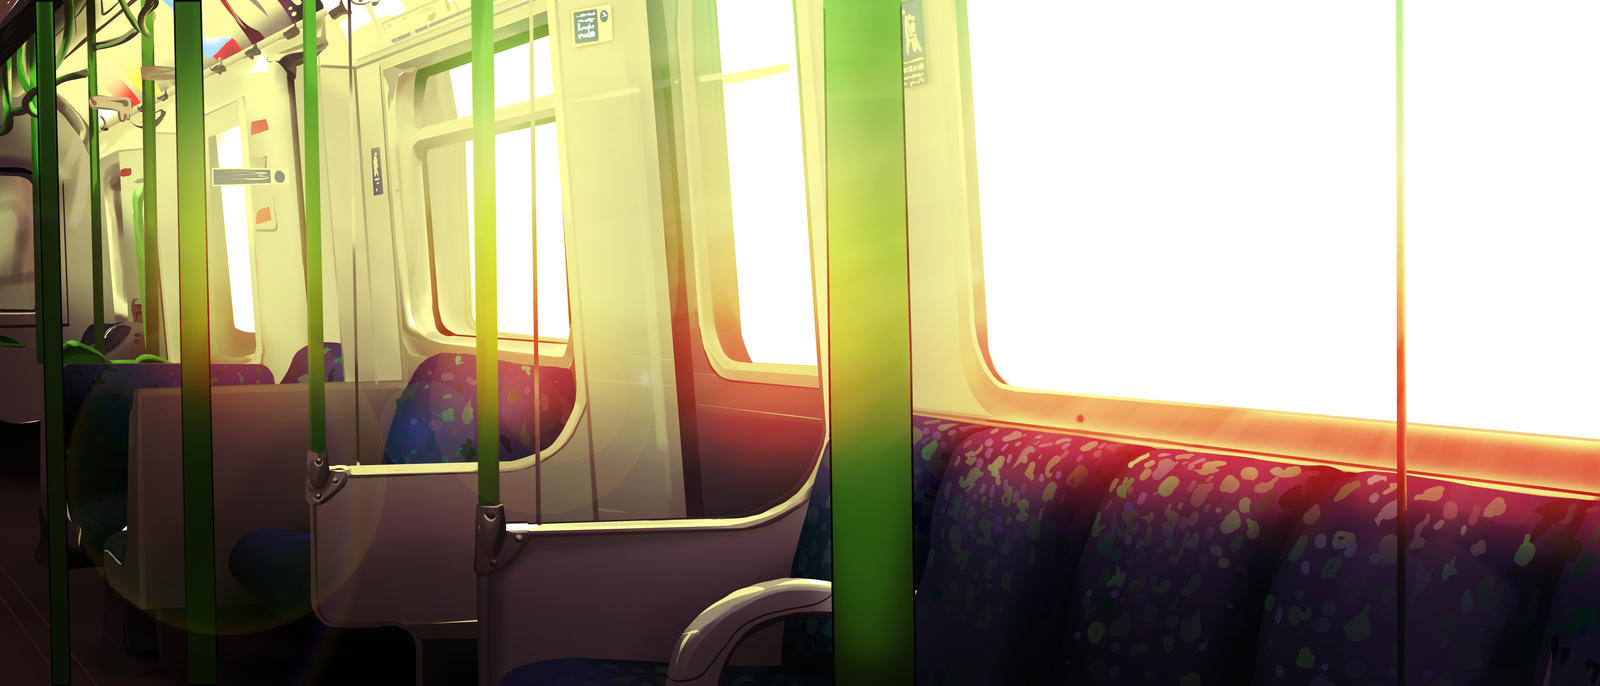 Riding Alone by haikuo